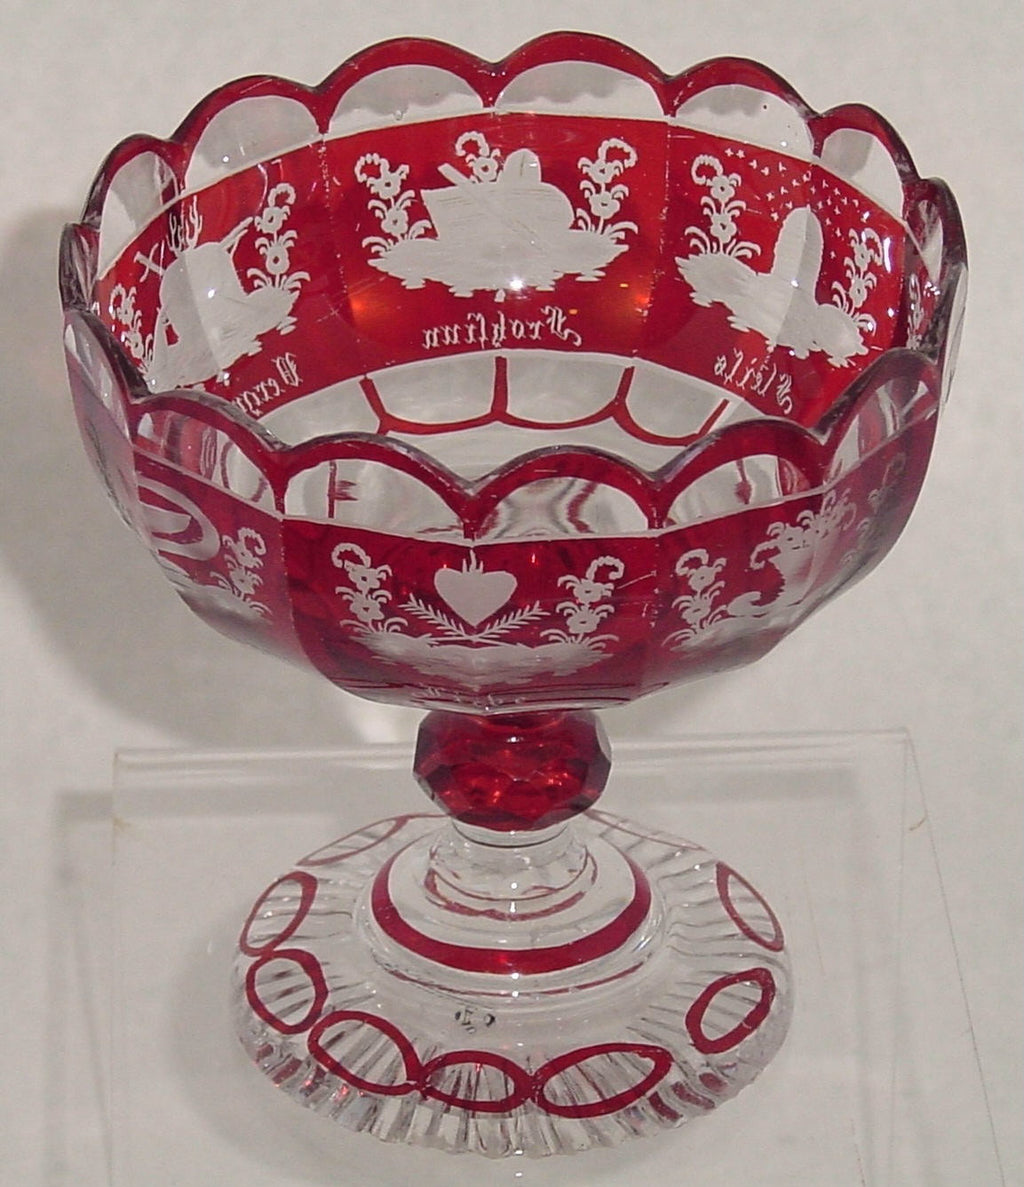 910193 Ruby Flashed Compote With 15 Cut Glass Sides and 8 Engraved Designs, Bohemian Glassware, Antique, - ReeceFurniture.com - Free Local Pick Ups: Frankenmuth, MI, Indianapolis, IN, Chicago Ridge, IL, and Detroit, MI